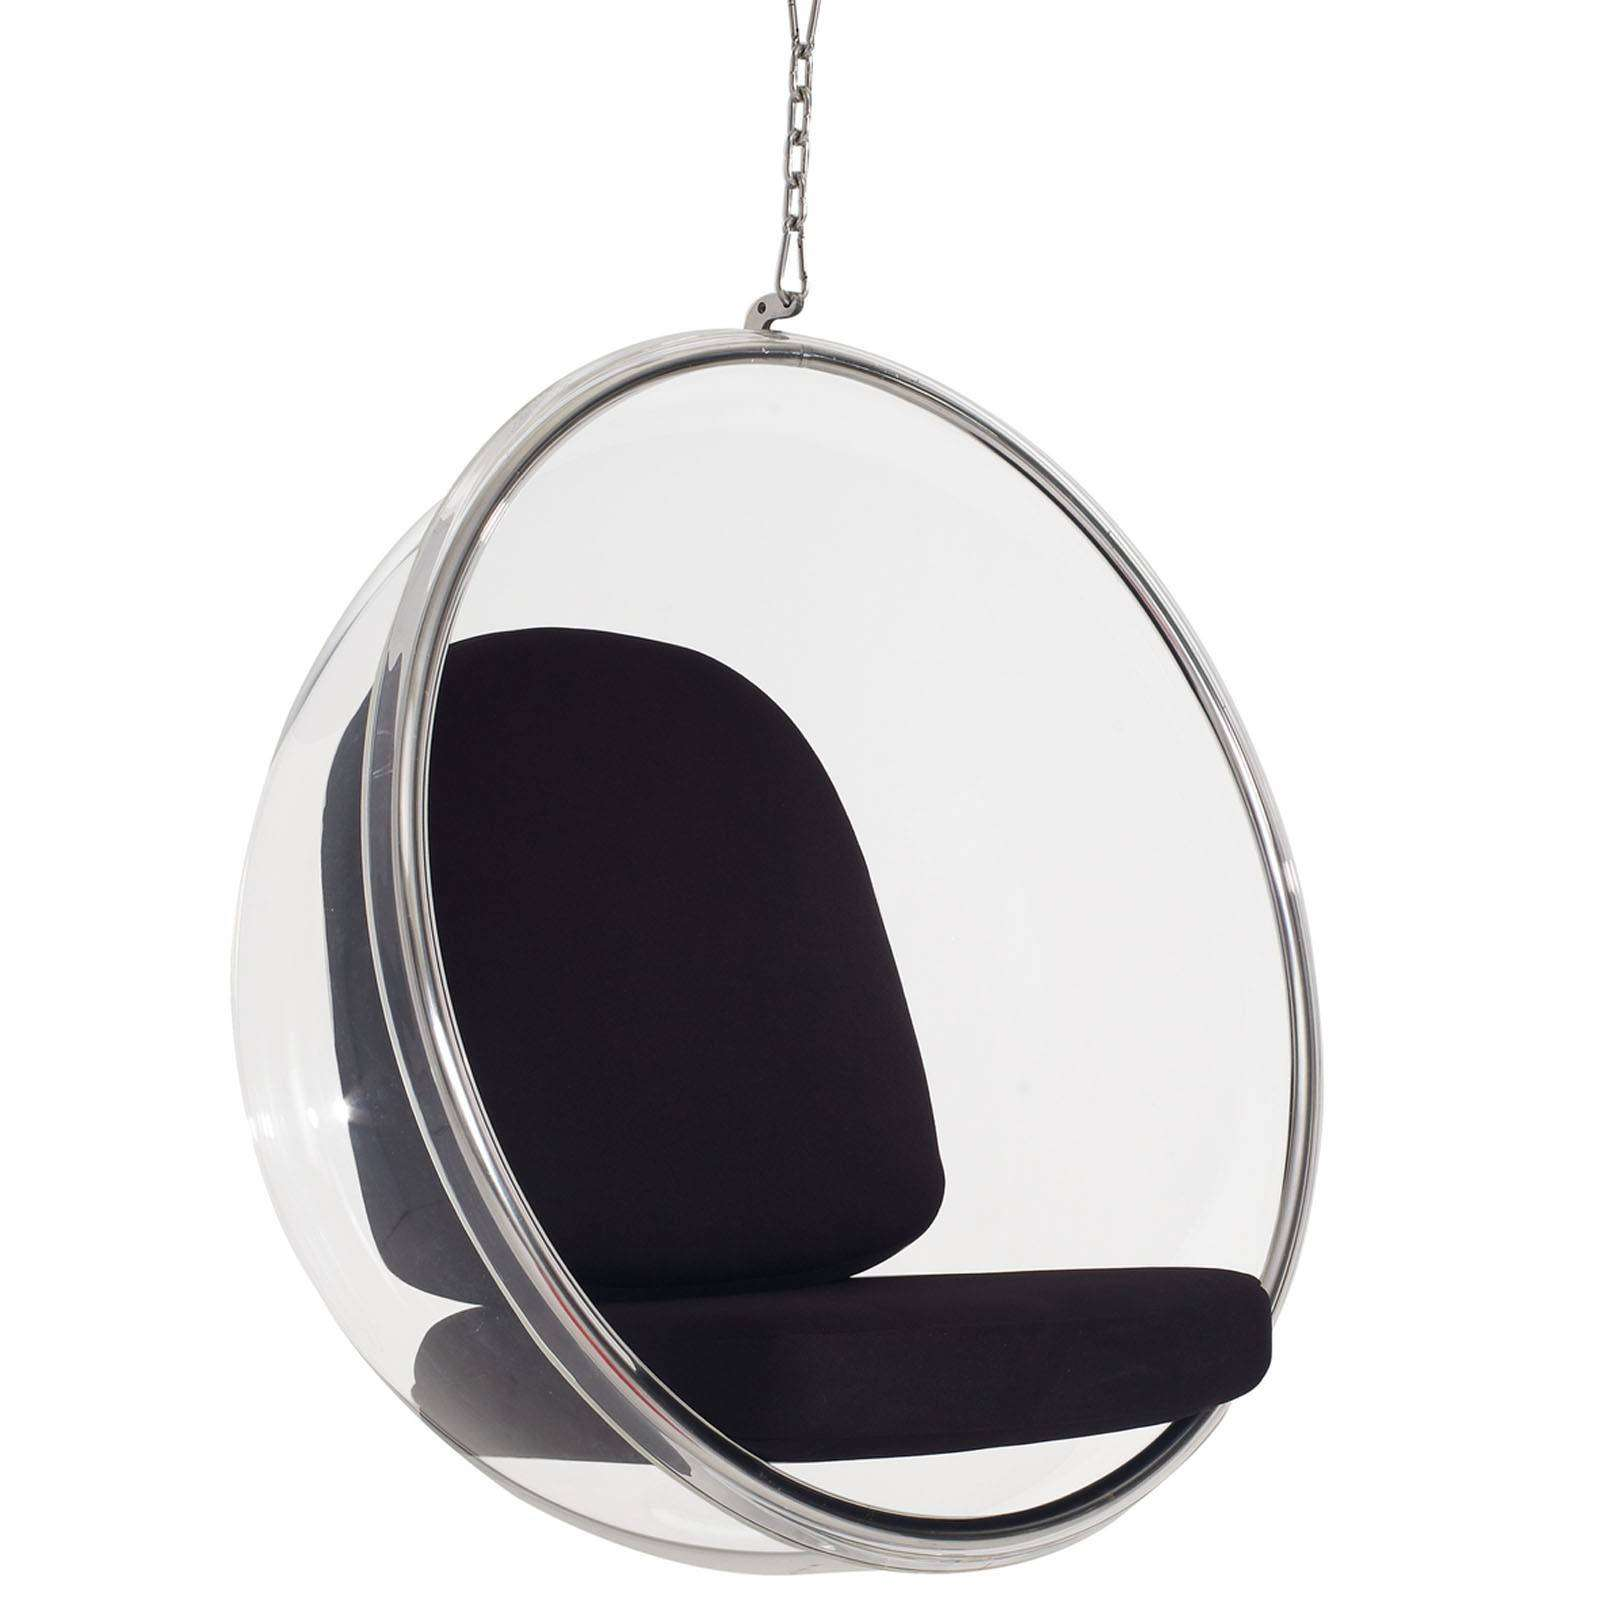 Bubble chair eero aarnio - Eero Aarnio Style Hanging Bubble Chair